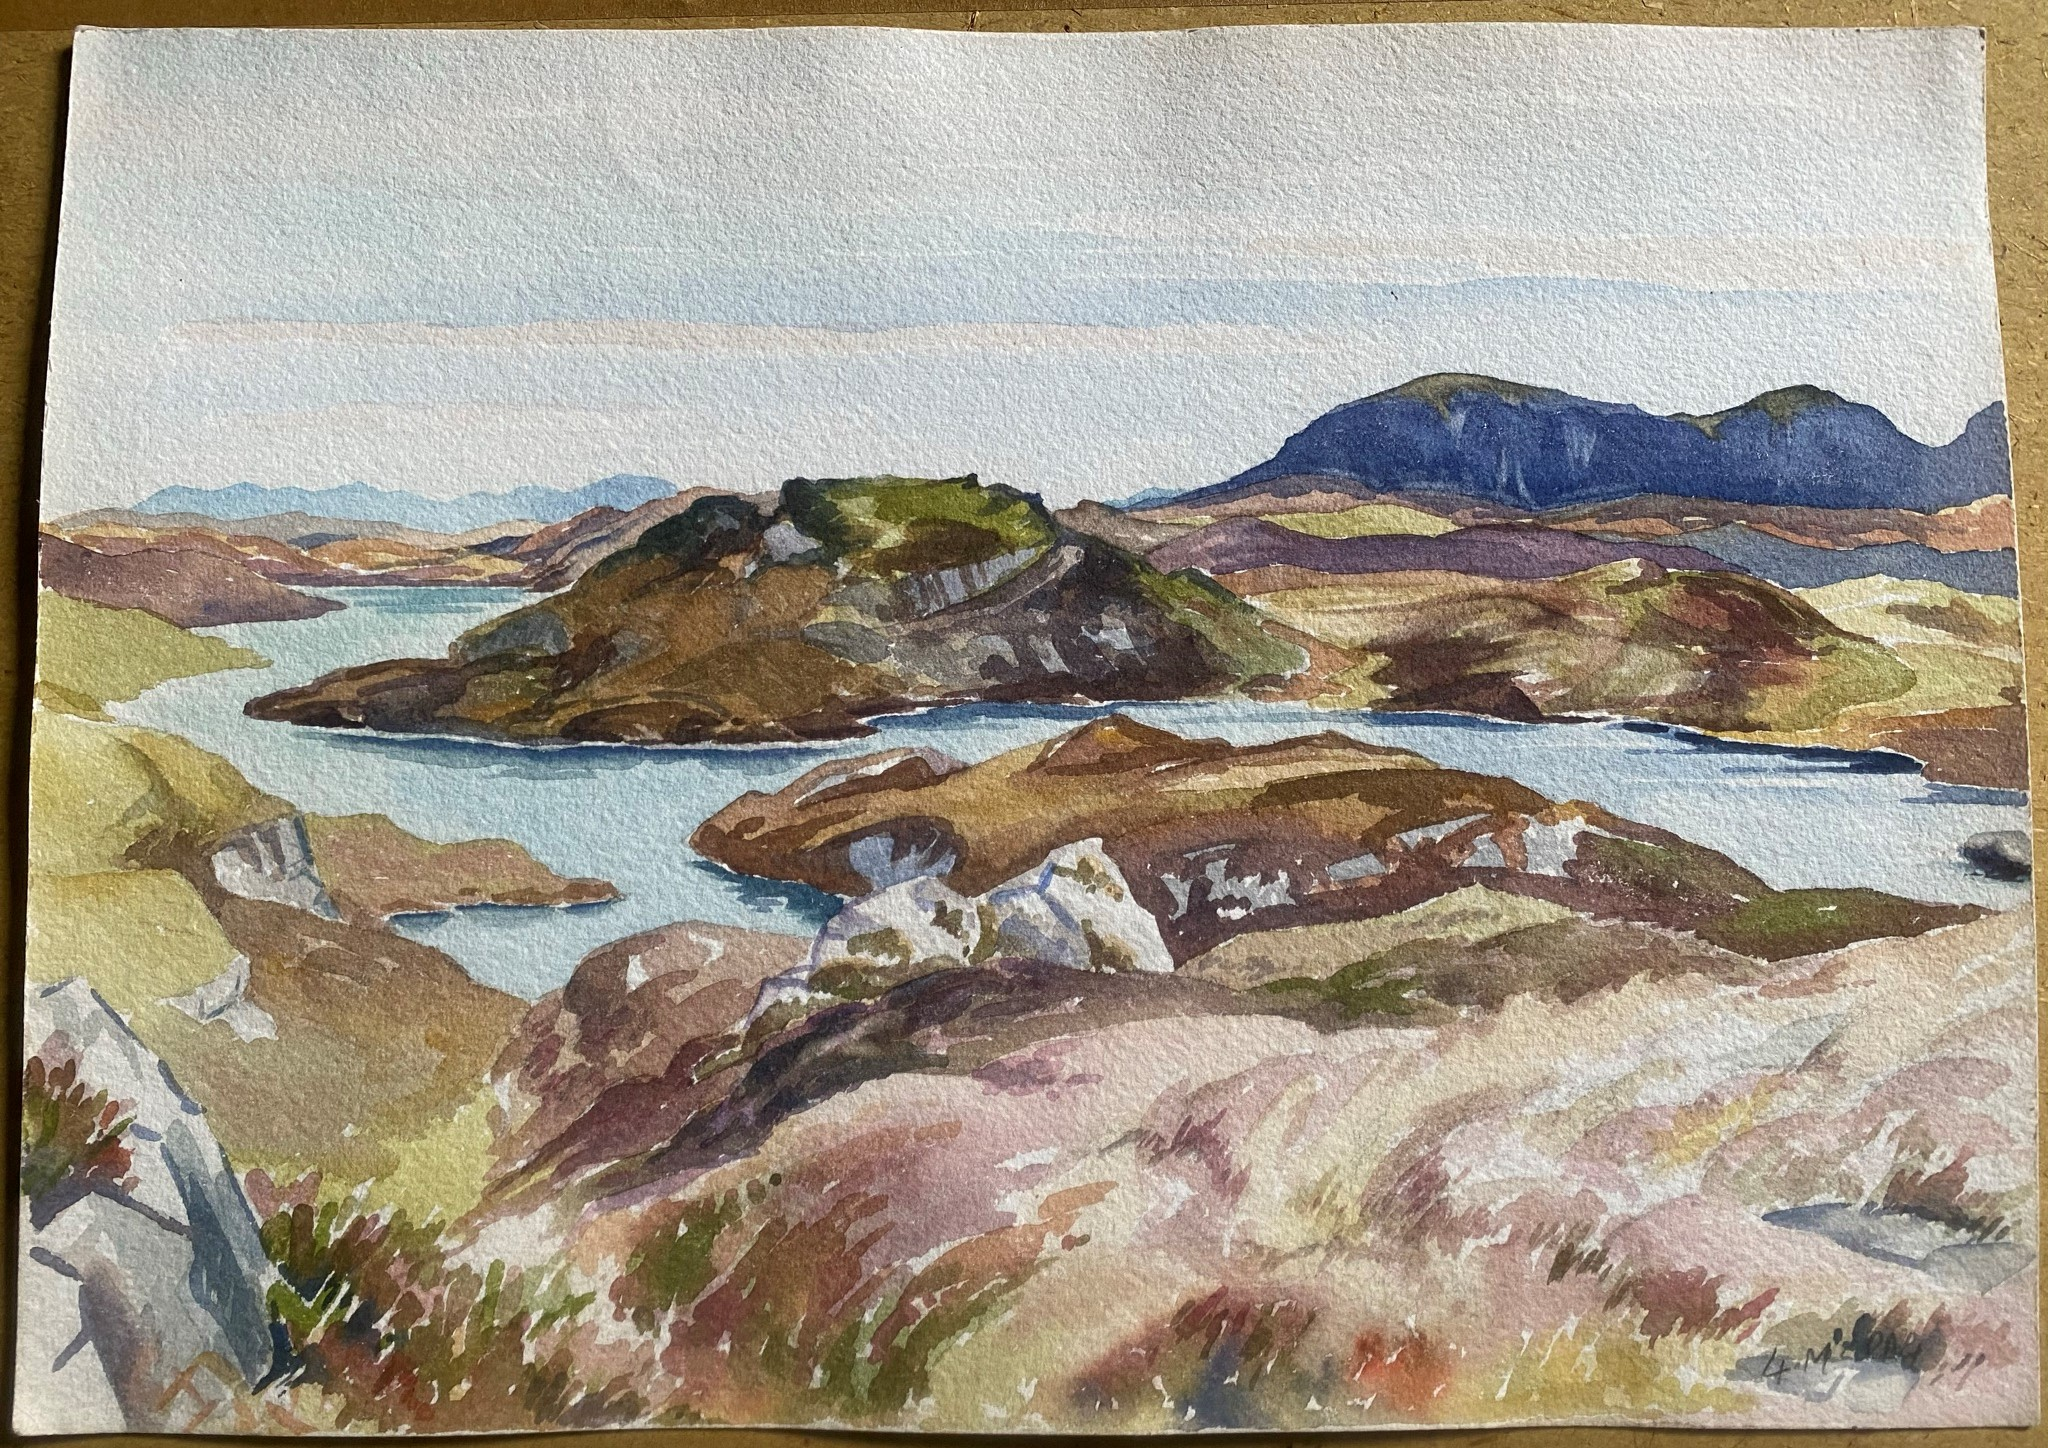 Watercolour signed G. M. Craig, (Gertrude Mary) Quinaig - Image 3 of 4